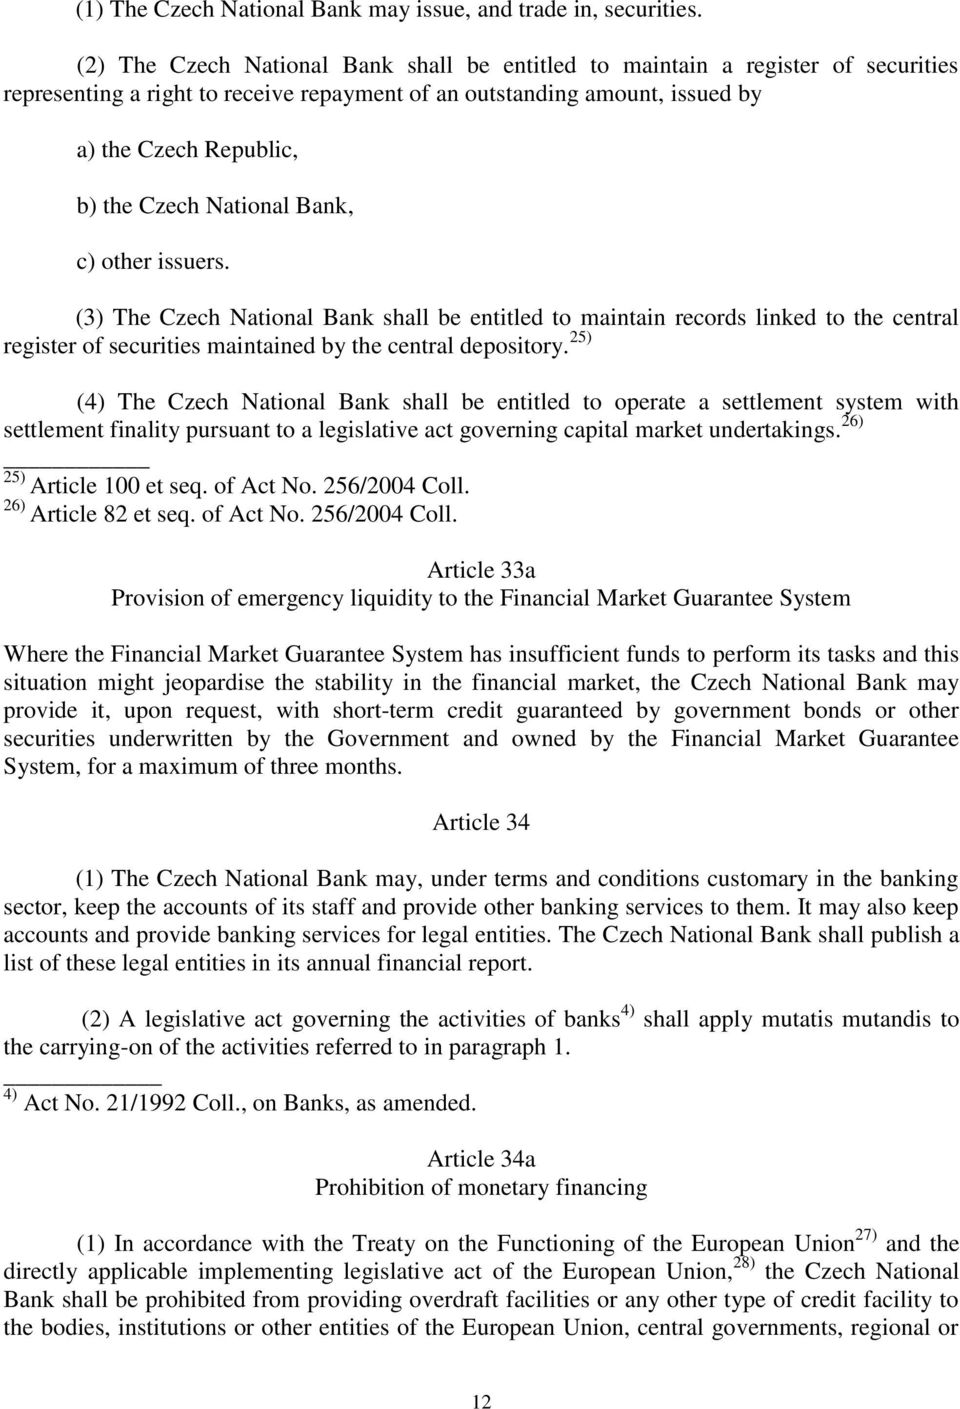 National Bank, c) other issuers. (3) The Czech National Bank shall be entitled to maintain records linked to the central register of securities maintained by the central depository.